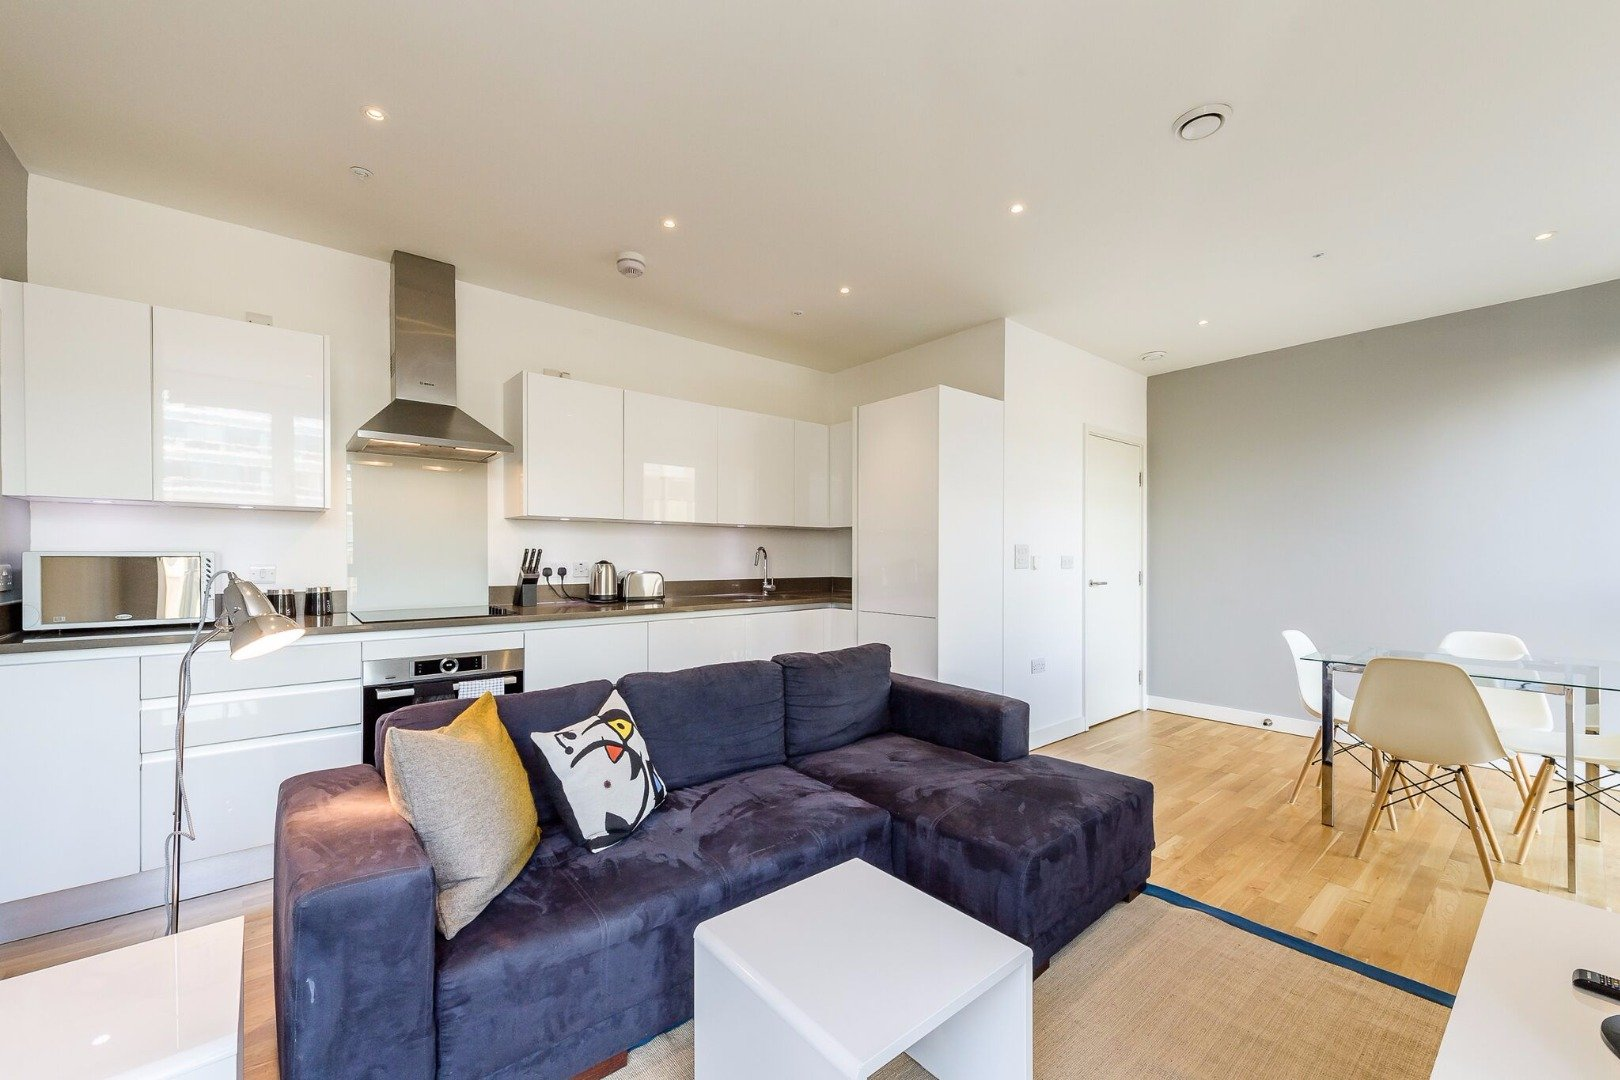 Looking-for-affordable-accommodation-in-Victoria?-why-not-book-our-lovely-Victoria-Serviced-Accommodation-at-Howick-Place.-Call-today-for-great-rates.